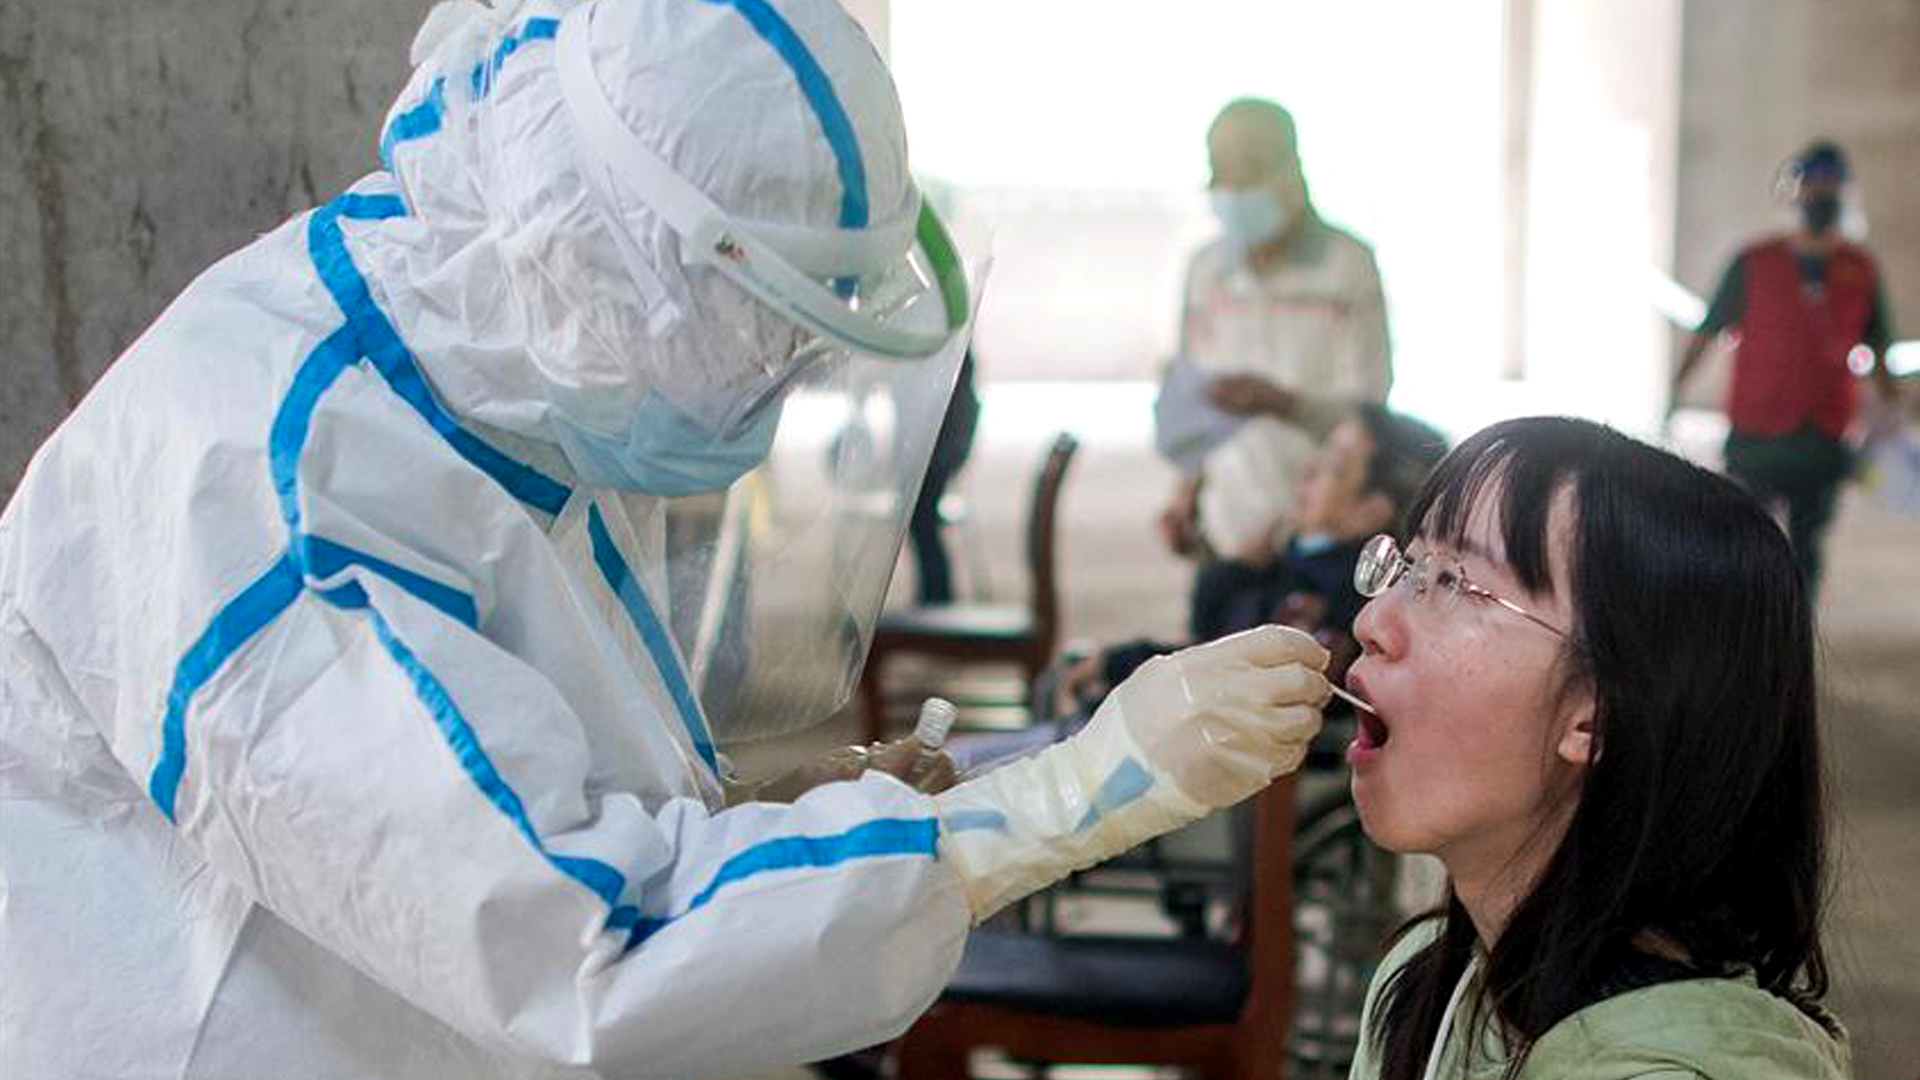 Over 11 mln in Beijing given COVID-19 tests